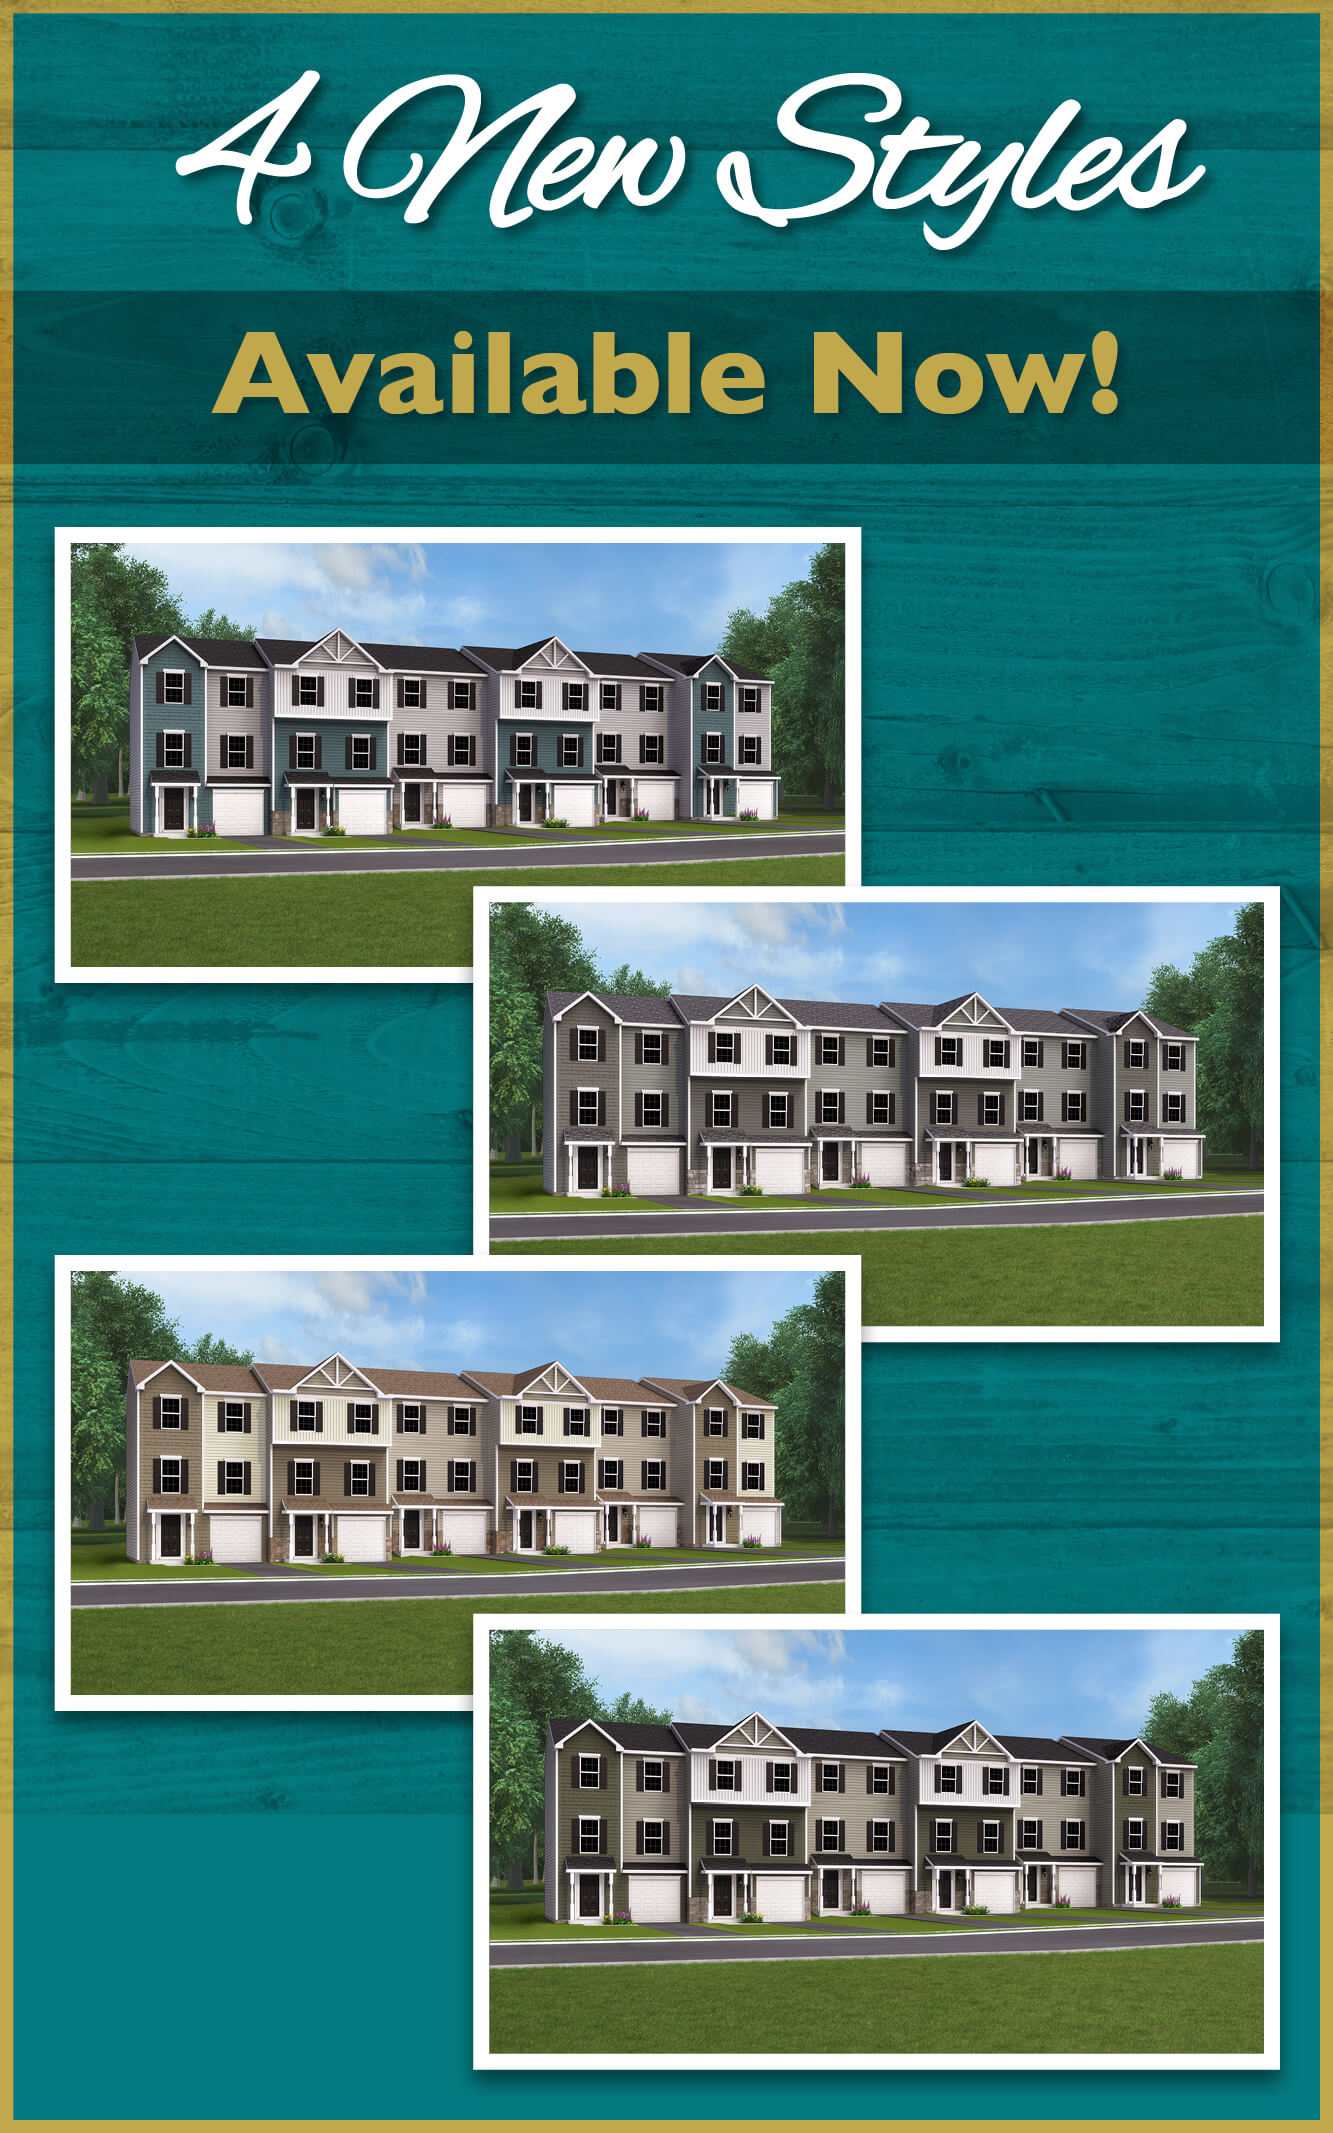 New Townhome Styles avaialbe now at in Hanover, PA at Homestead Acres